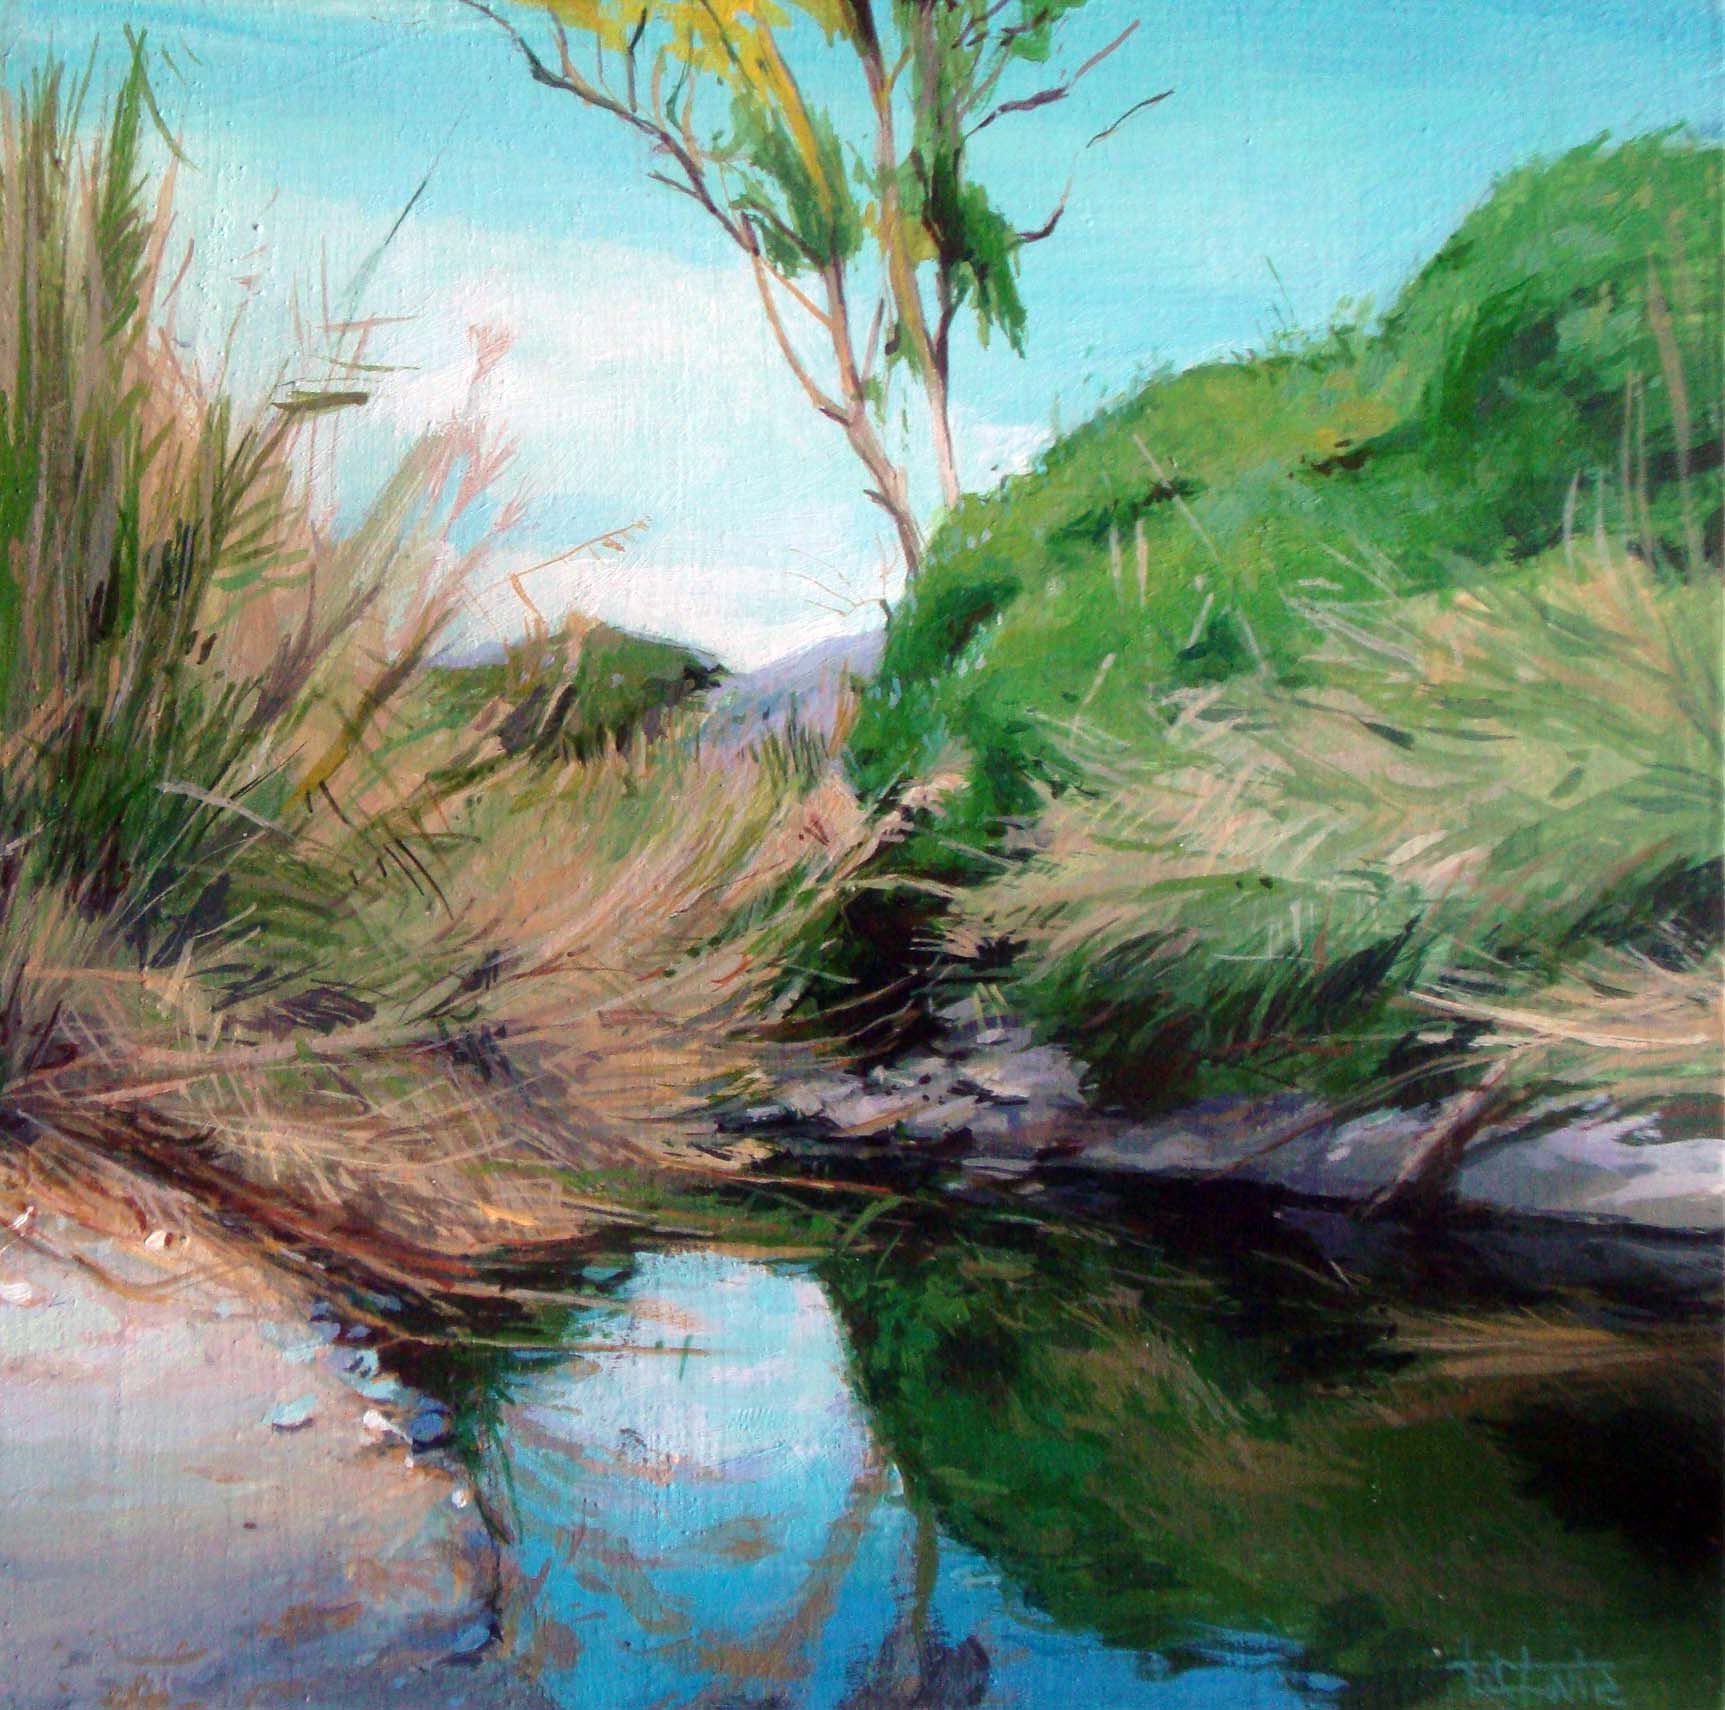 """River´s reflects"" original fine art by Víctor Tristante"